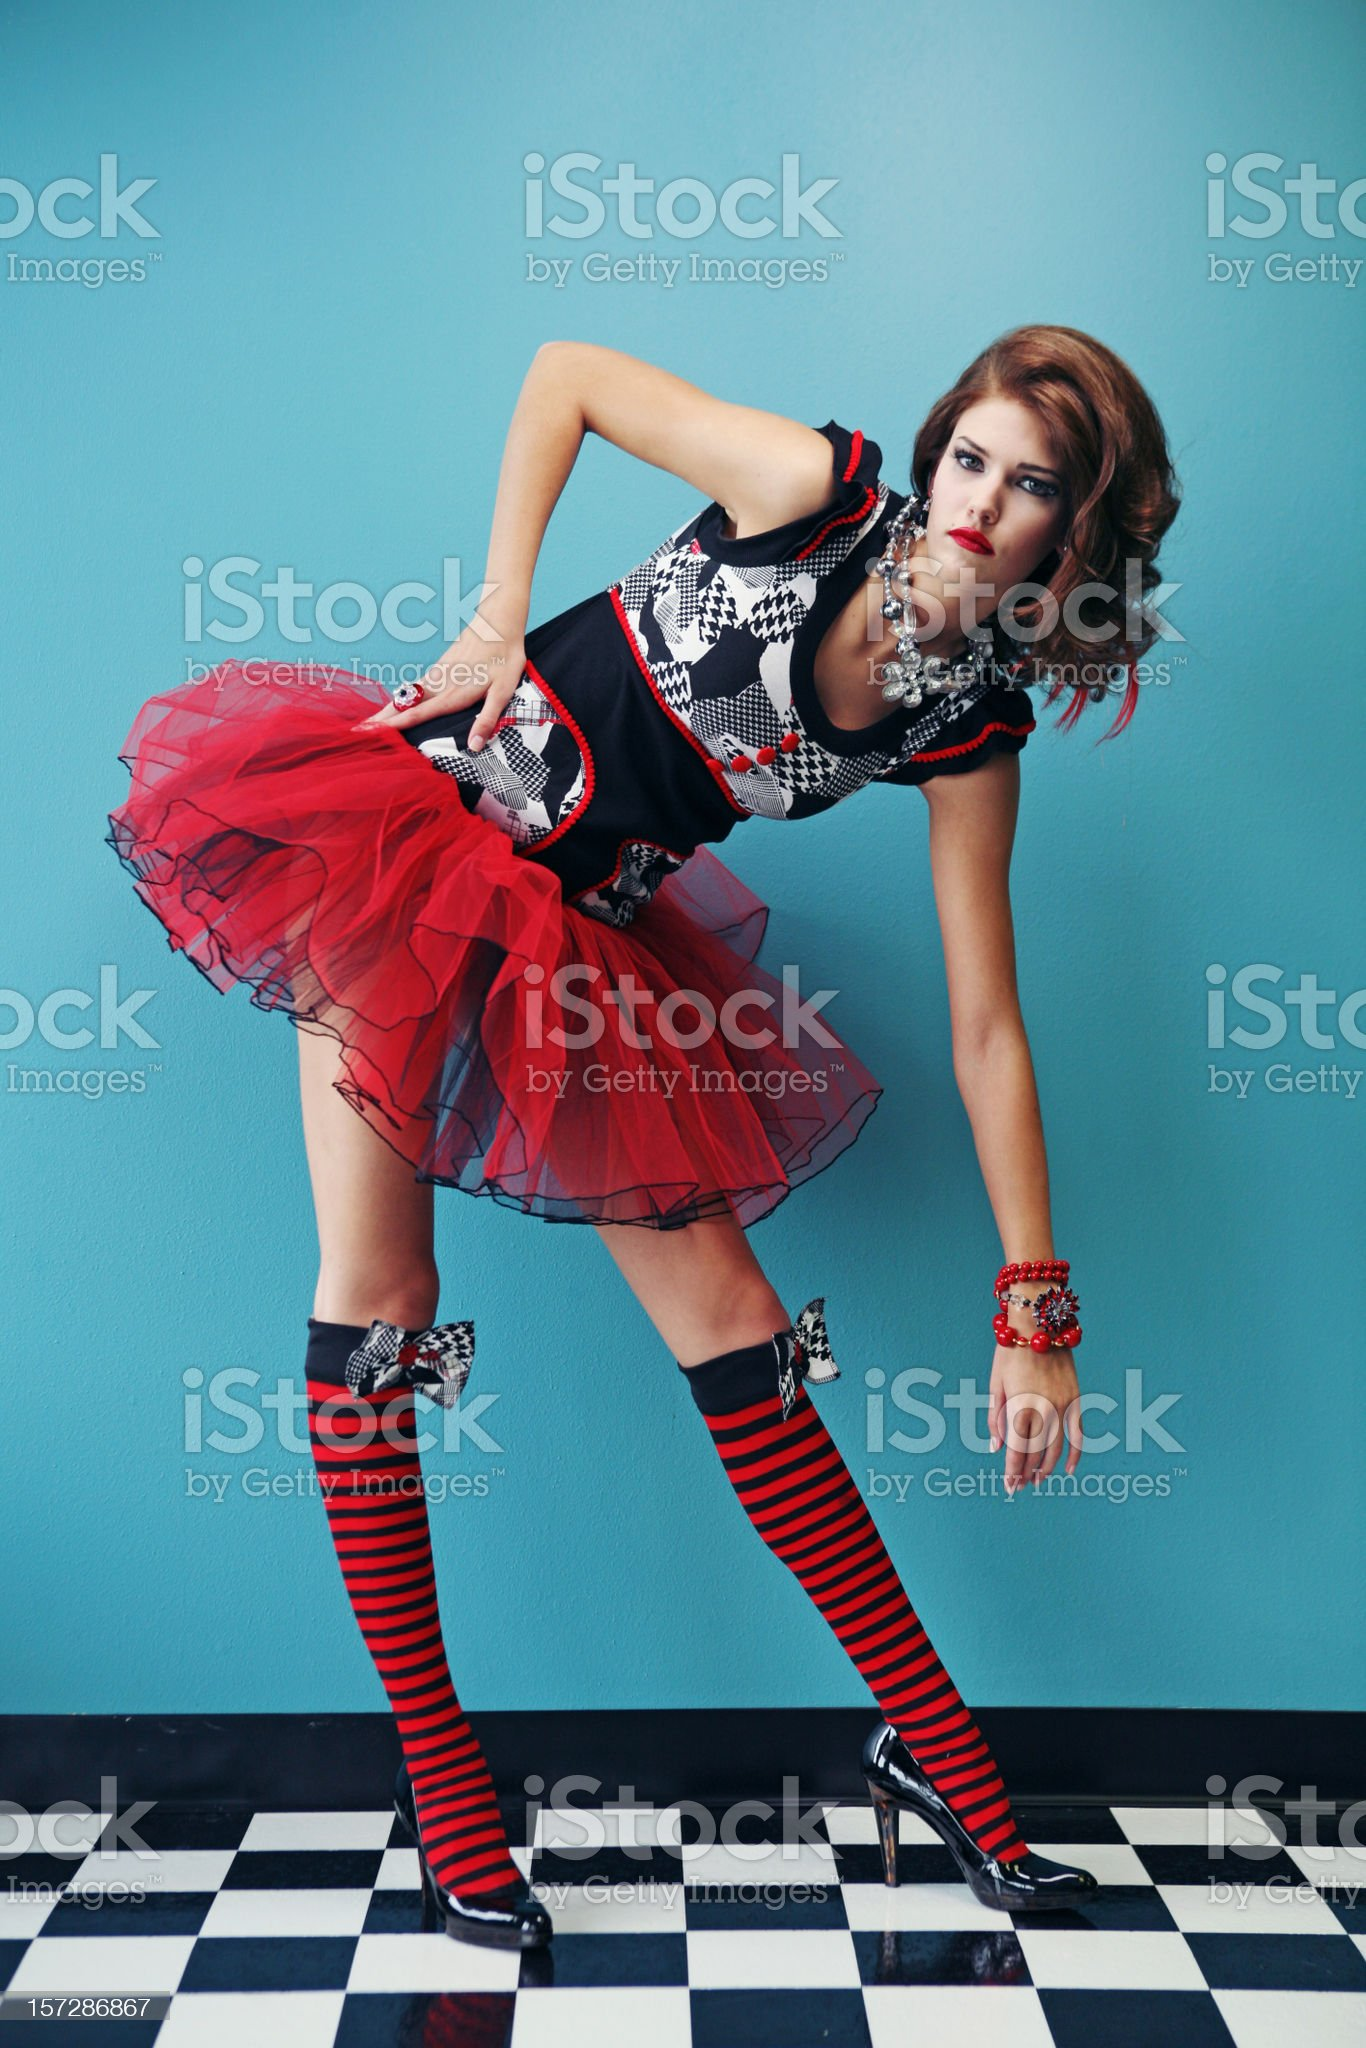 Teen Woman in Red and Black Dress on Tile Floor royalty-free stock photo